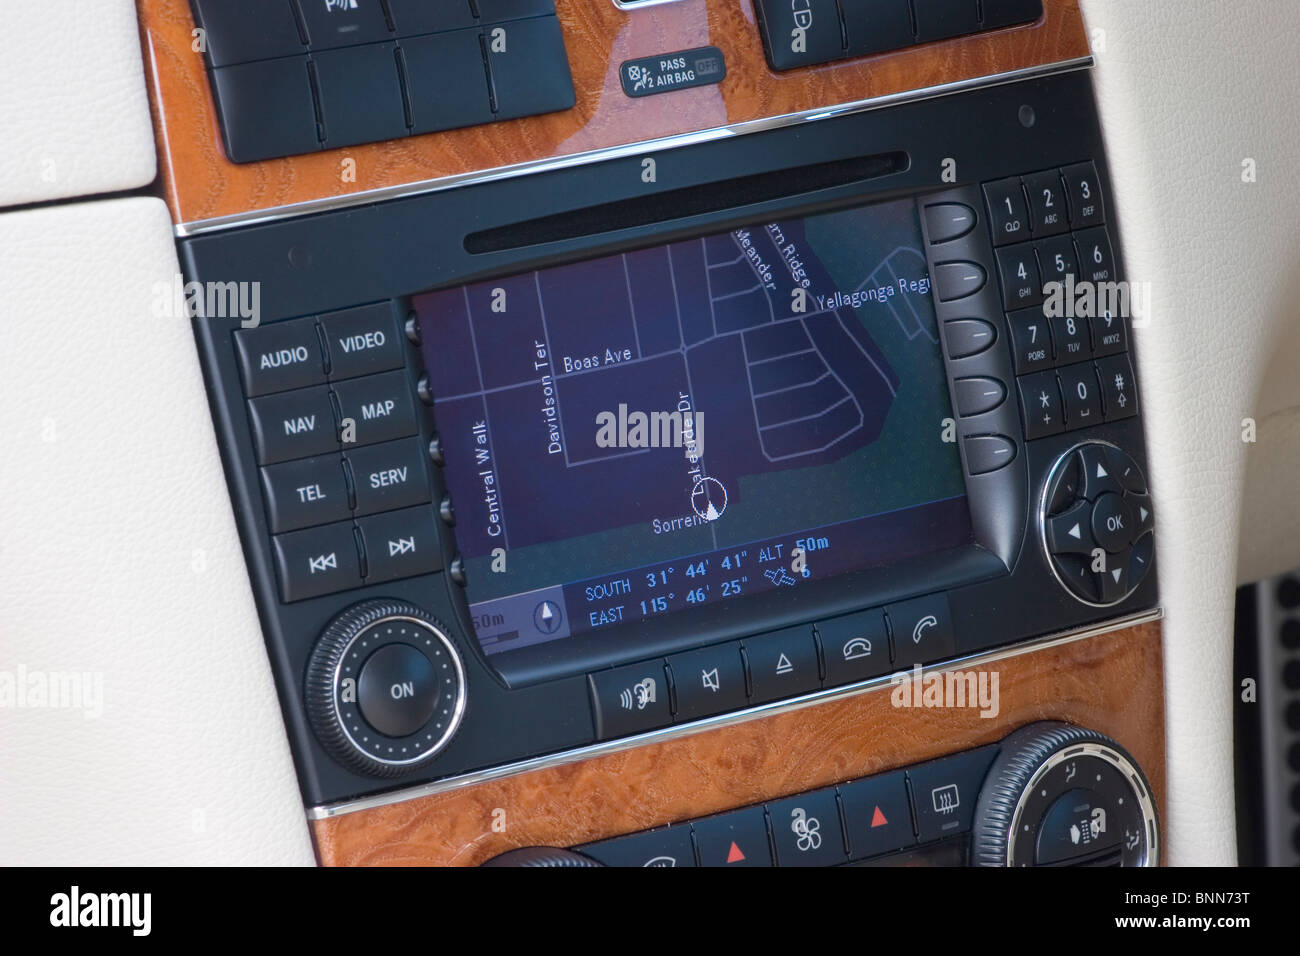 On board navigation system in a Mercedes Benz road car - Stock Image